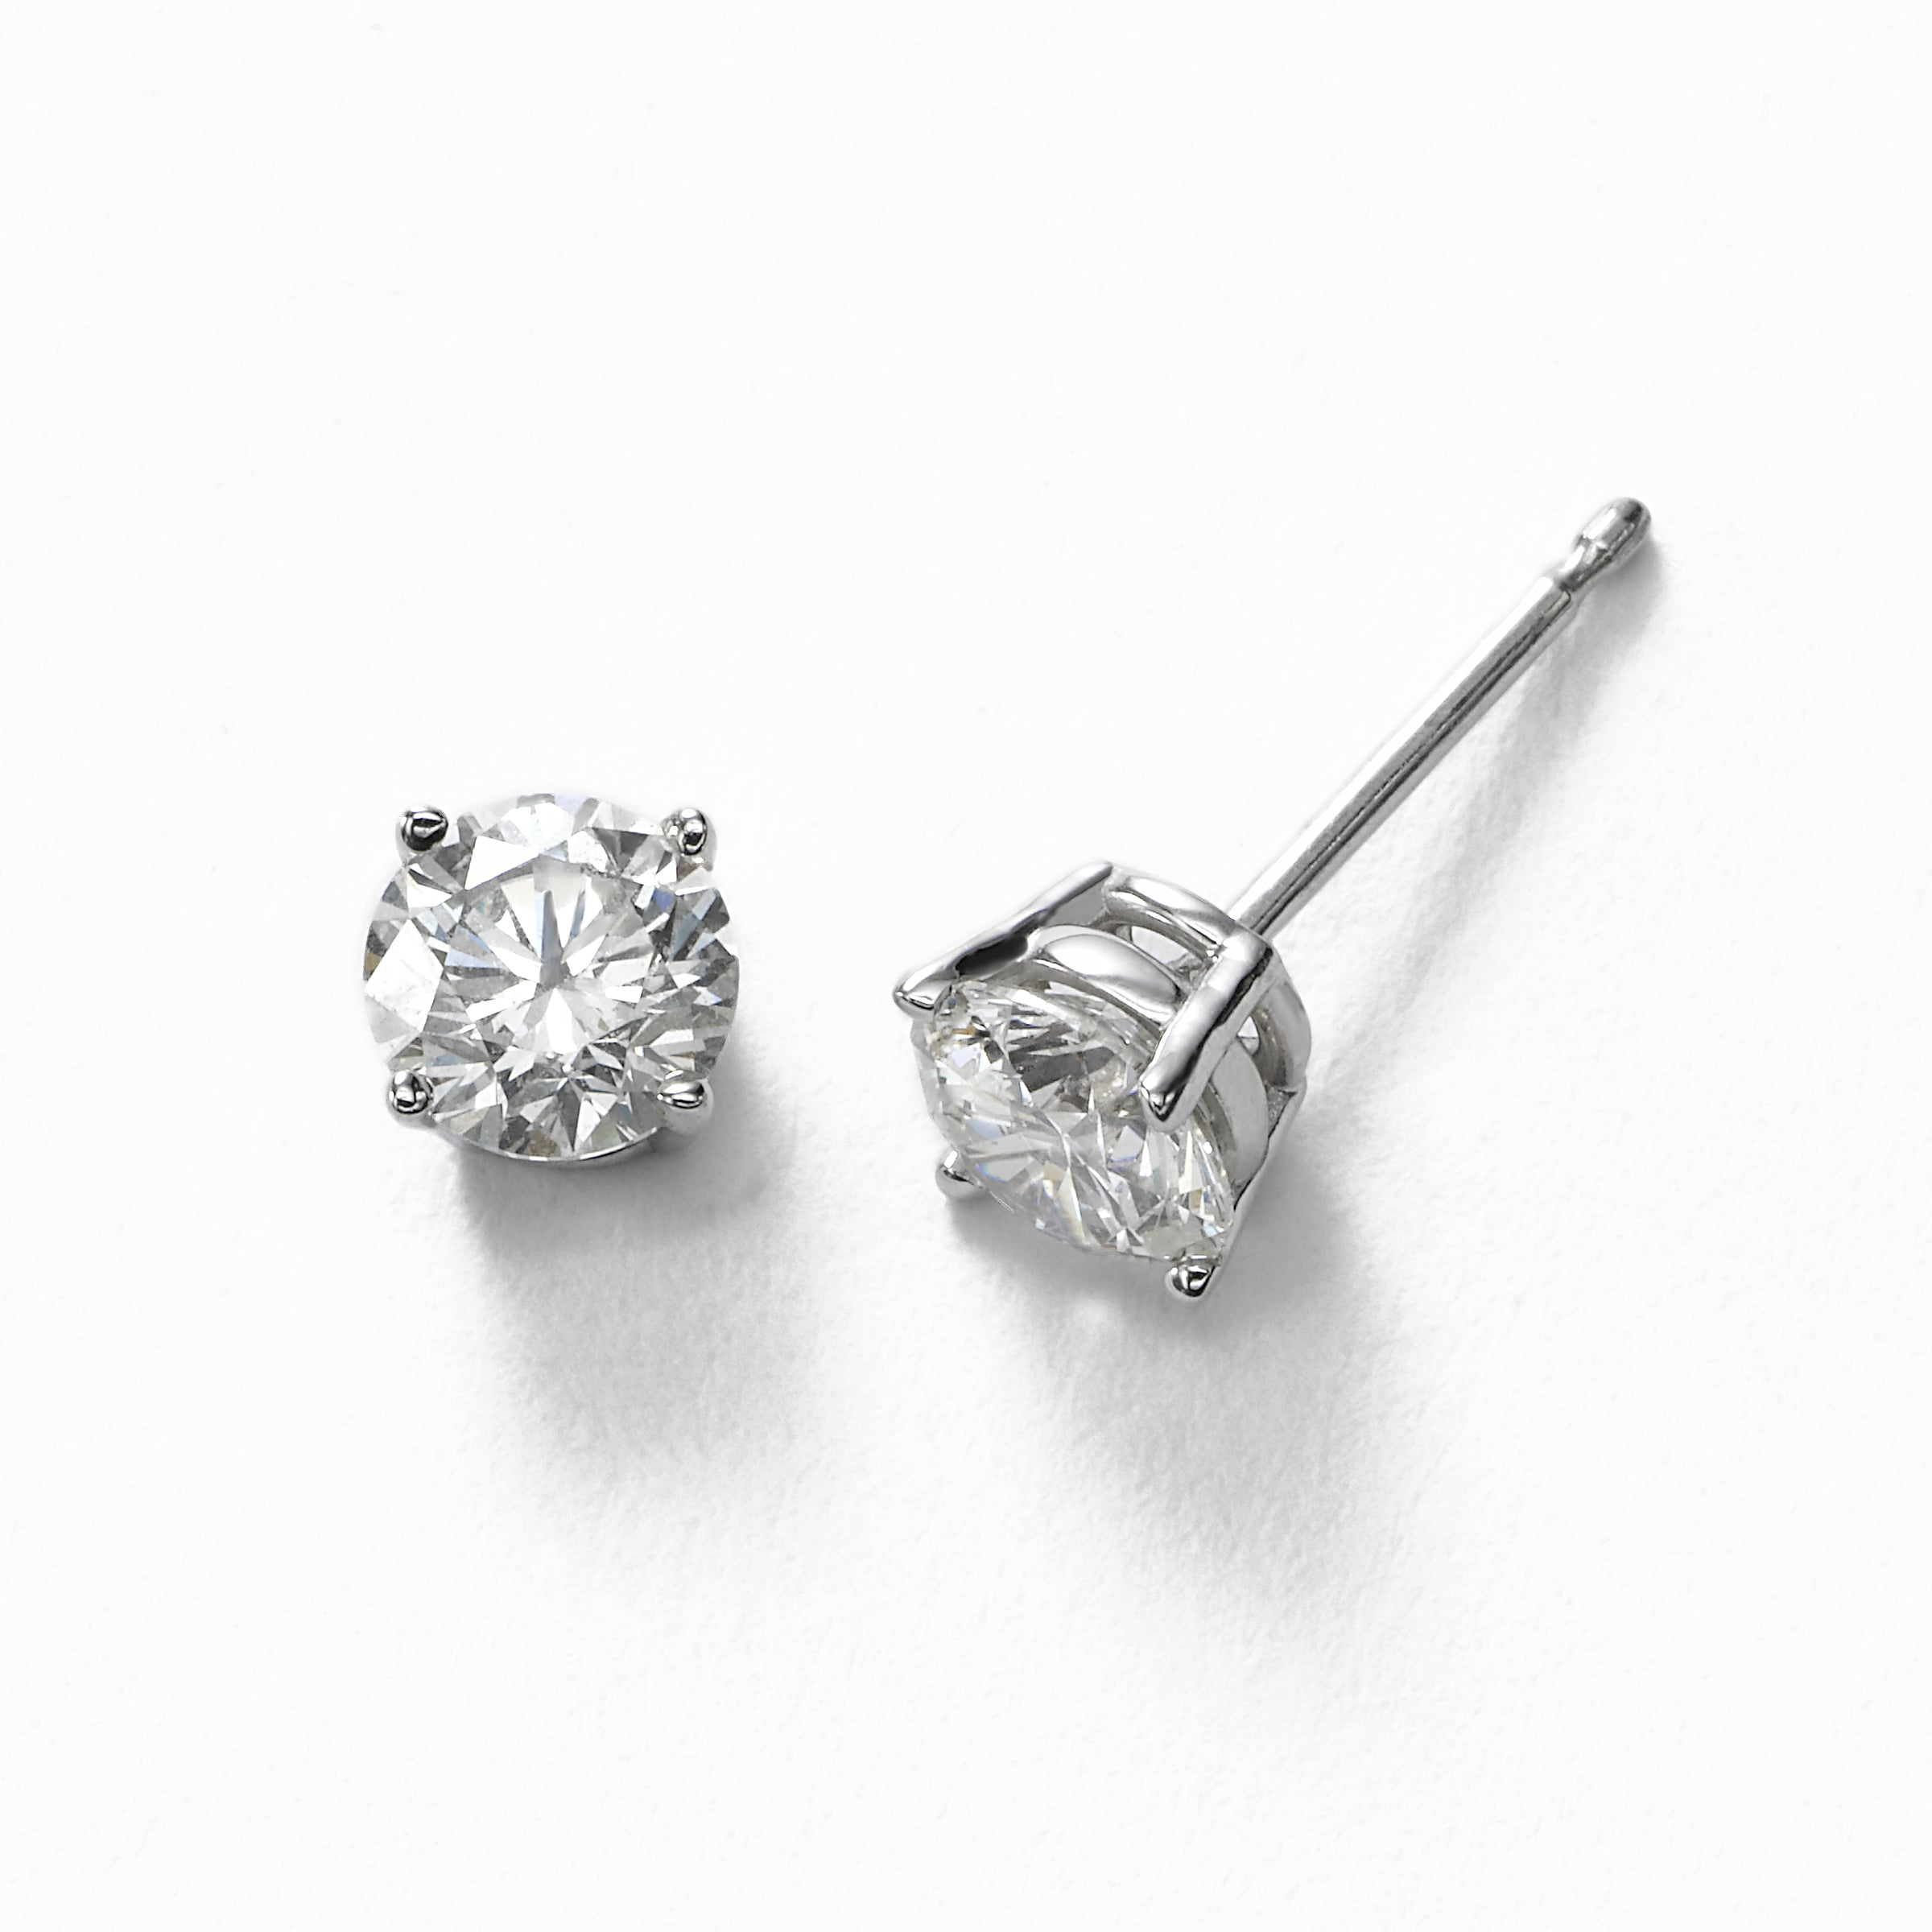 Diamond Stud Earrings, 1.81 Carats total, G-SI1, 14K White Gold